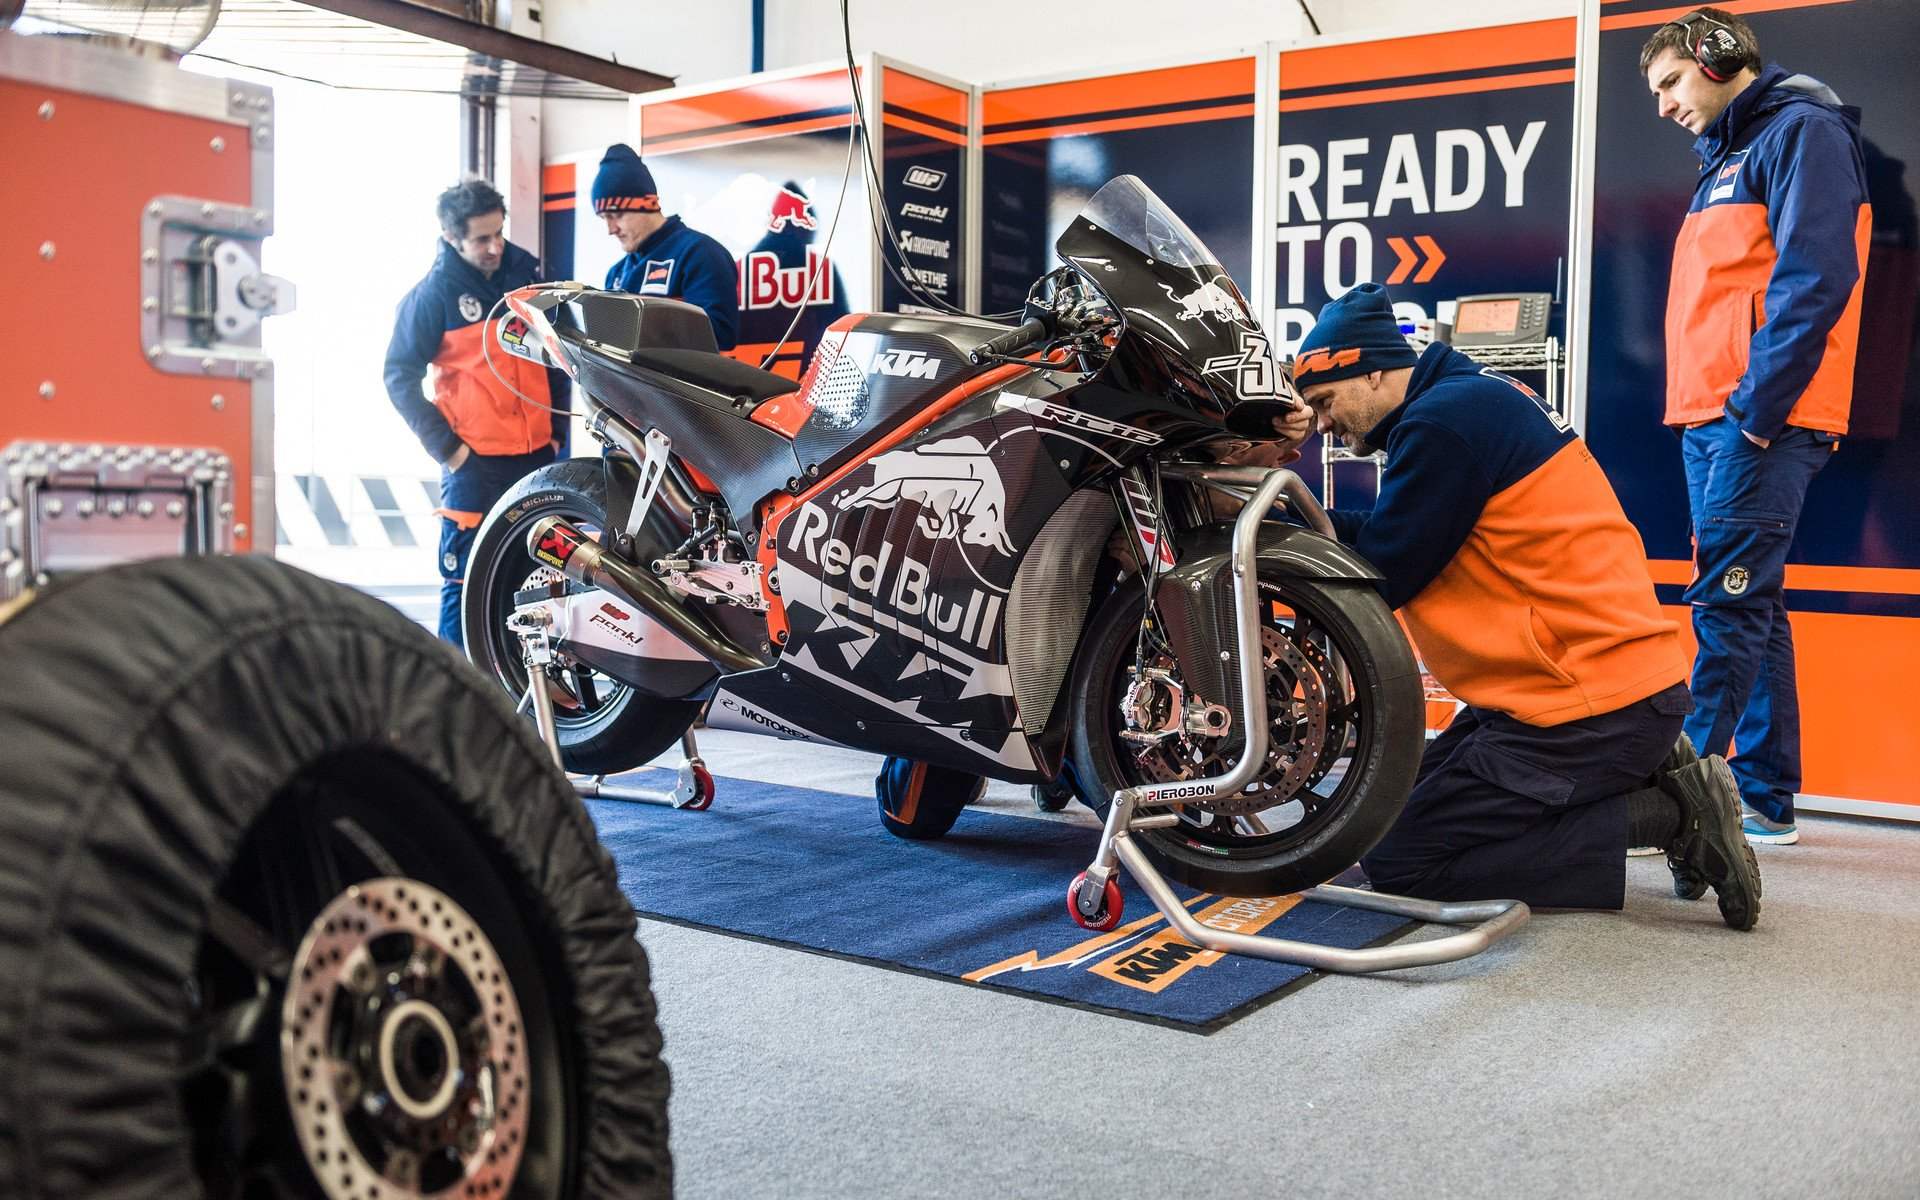 What Can We Expect From Ktm In Motogp